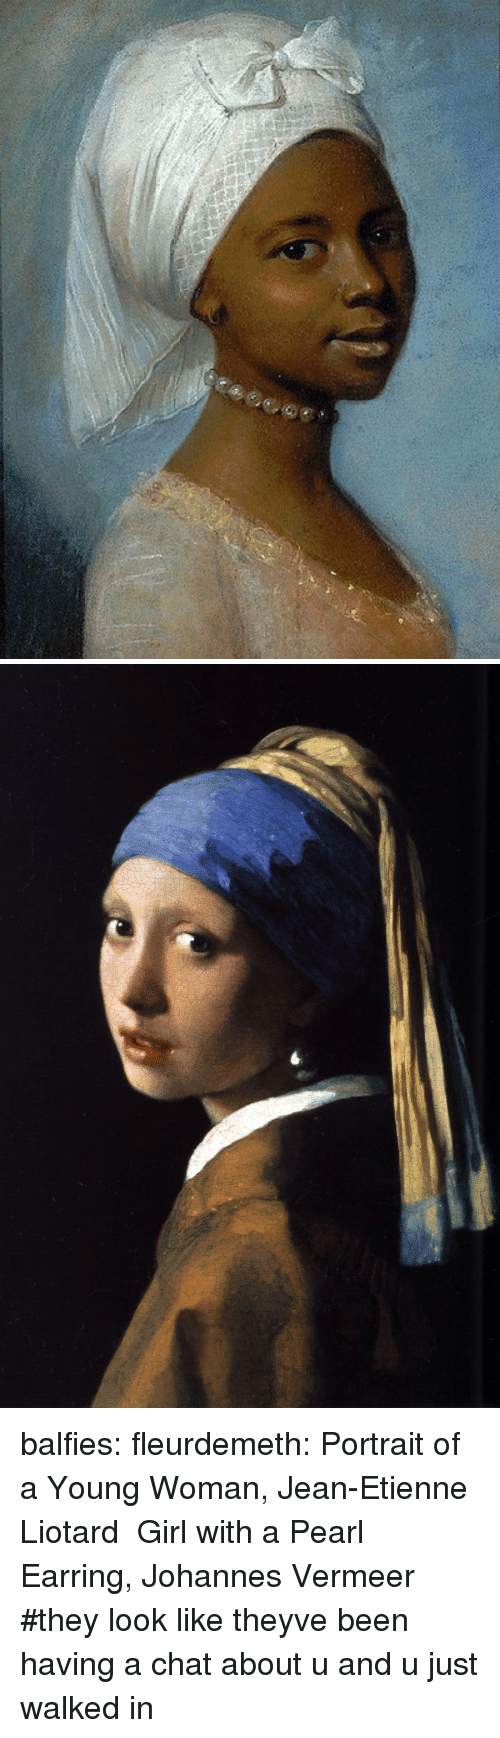 Target, Tumblr, and Blog: balfies: fleurdemeth:  Portrait of a Young Woman, Jean-Etienne Liotard Girl with a Pearl Earring, Johannes Vermeer  #they look like theyve been having a chat about u and u just walked in